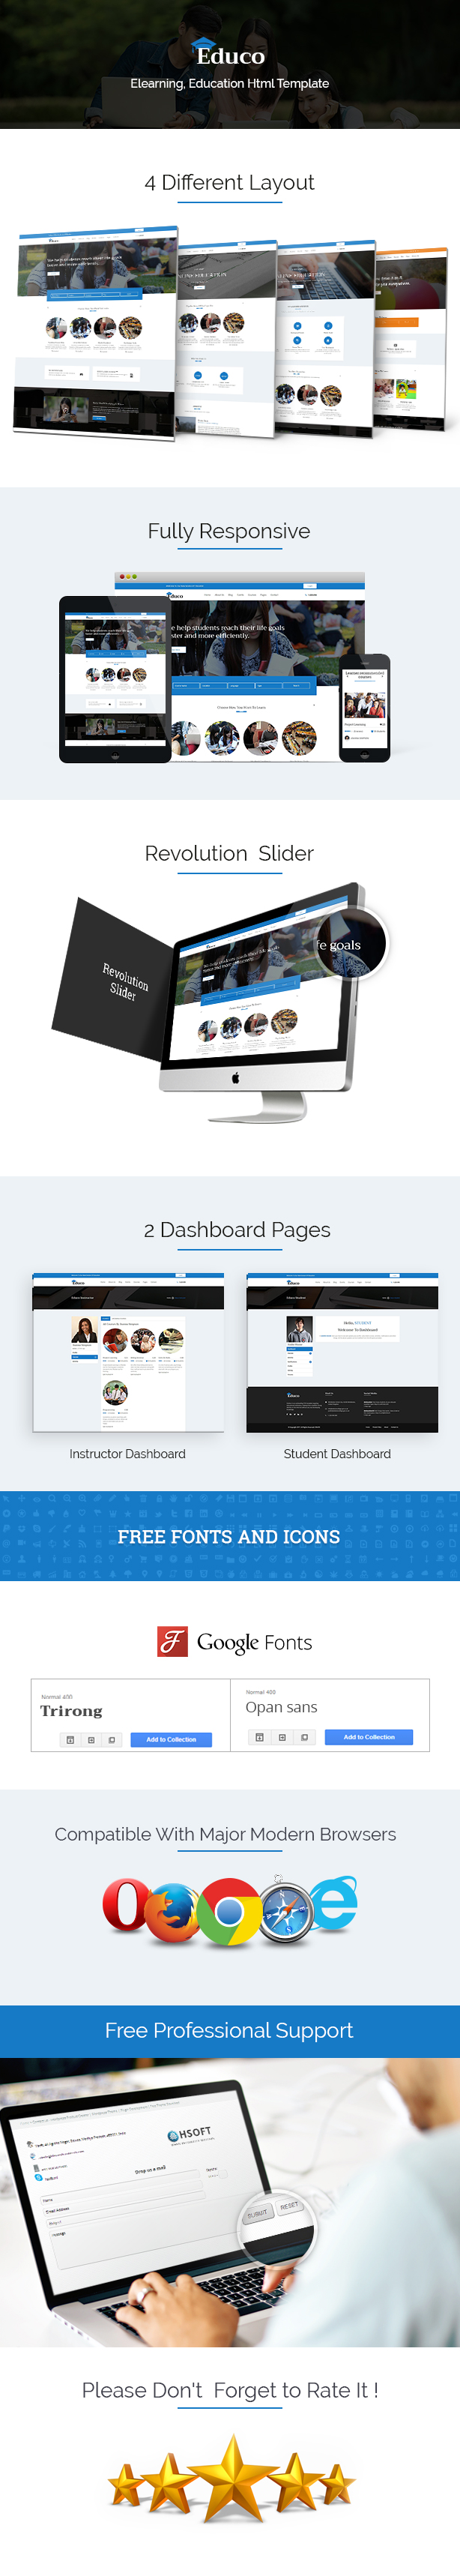 Educo - Elearning, Education Bootstrap Html Template - 7